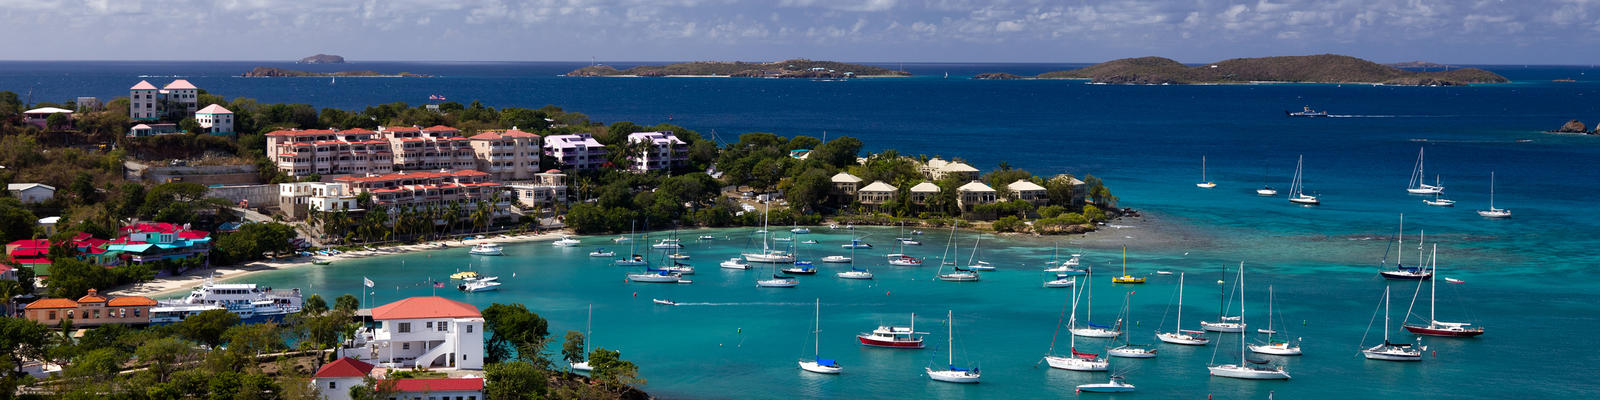 St. Thomas/St. John Beach Guide (Photo: Steve Heap/Shutterstock.com)